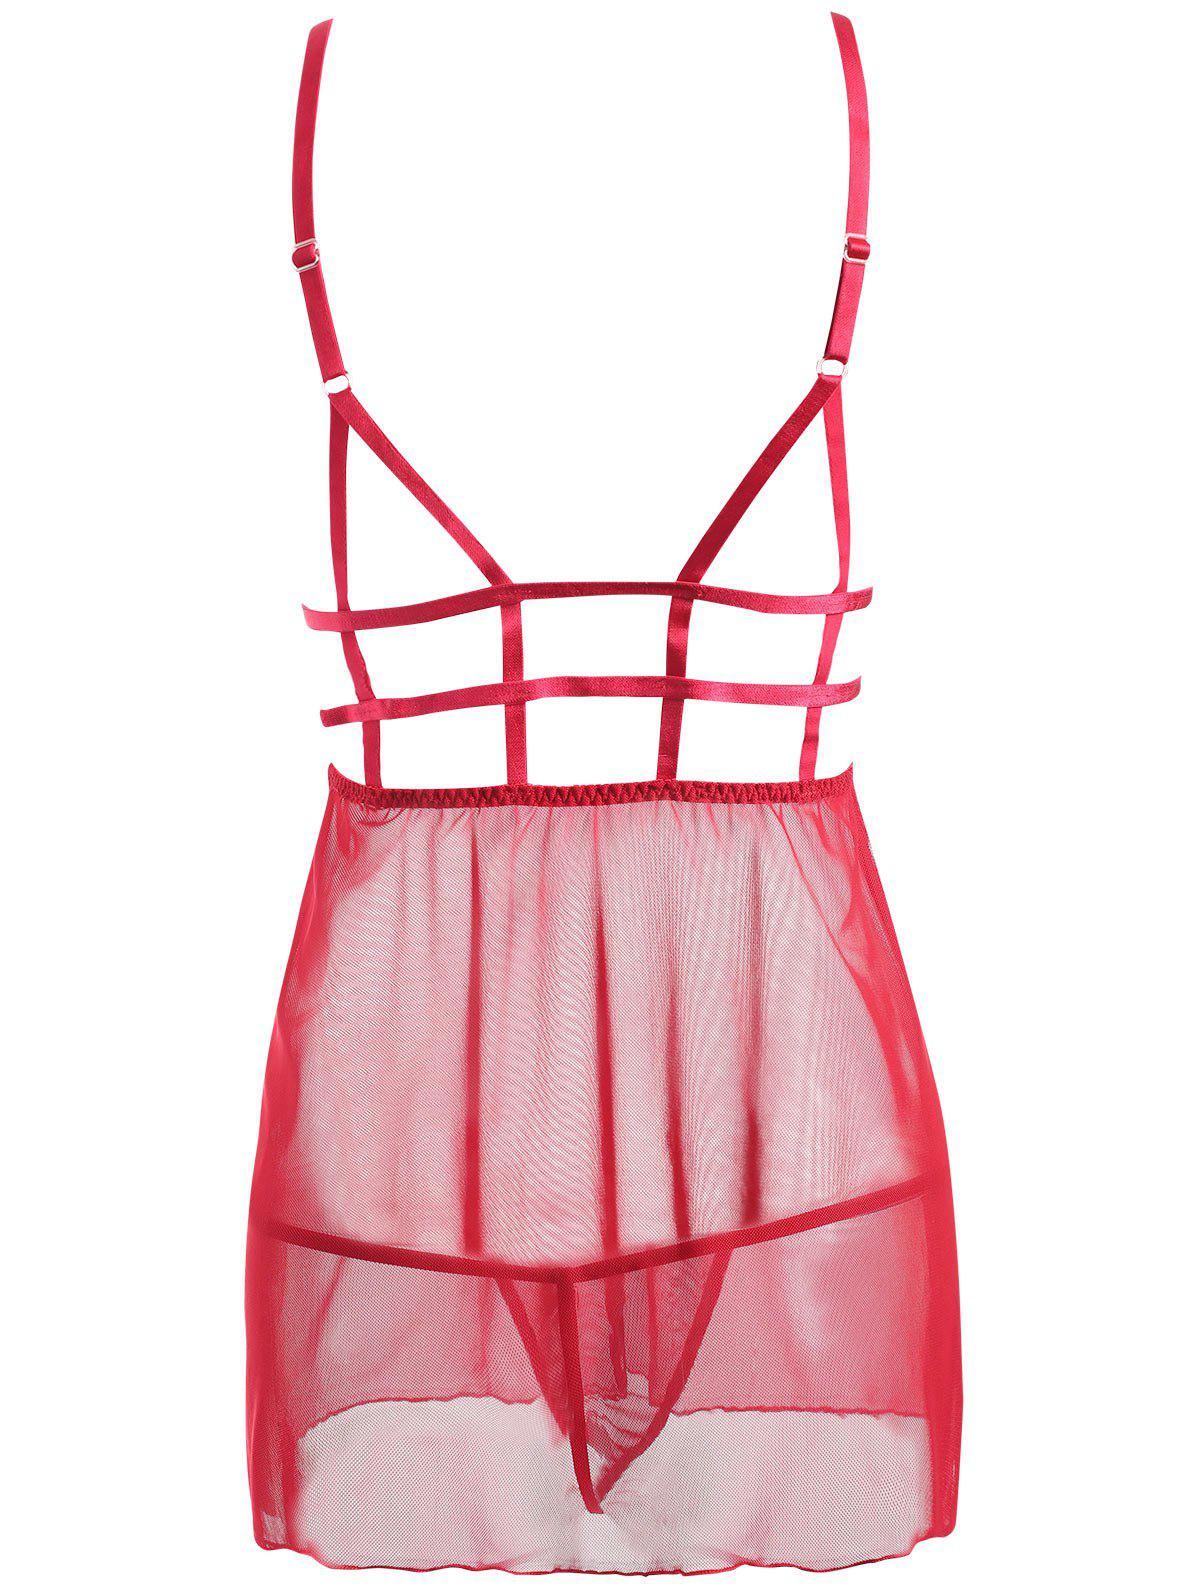 Caged Lace Mesh Slip Babydoll - RED S